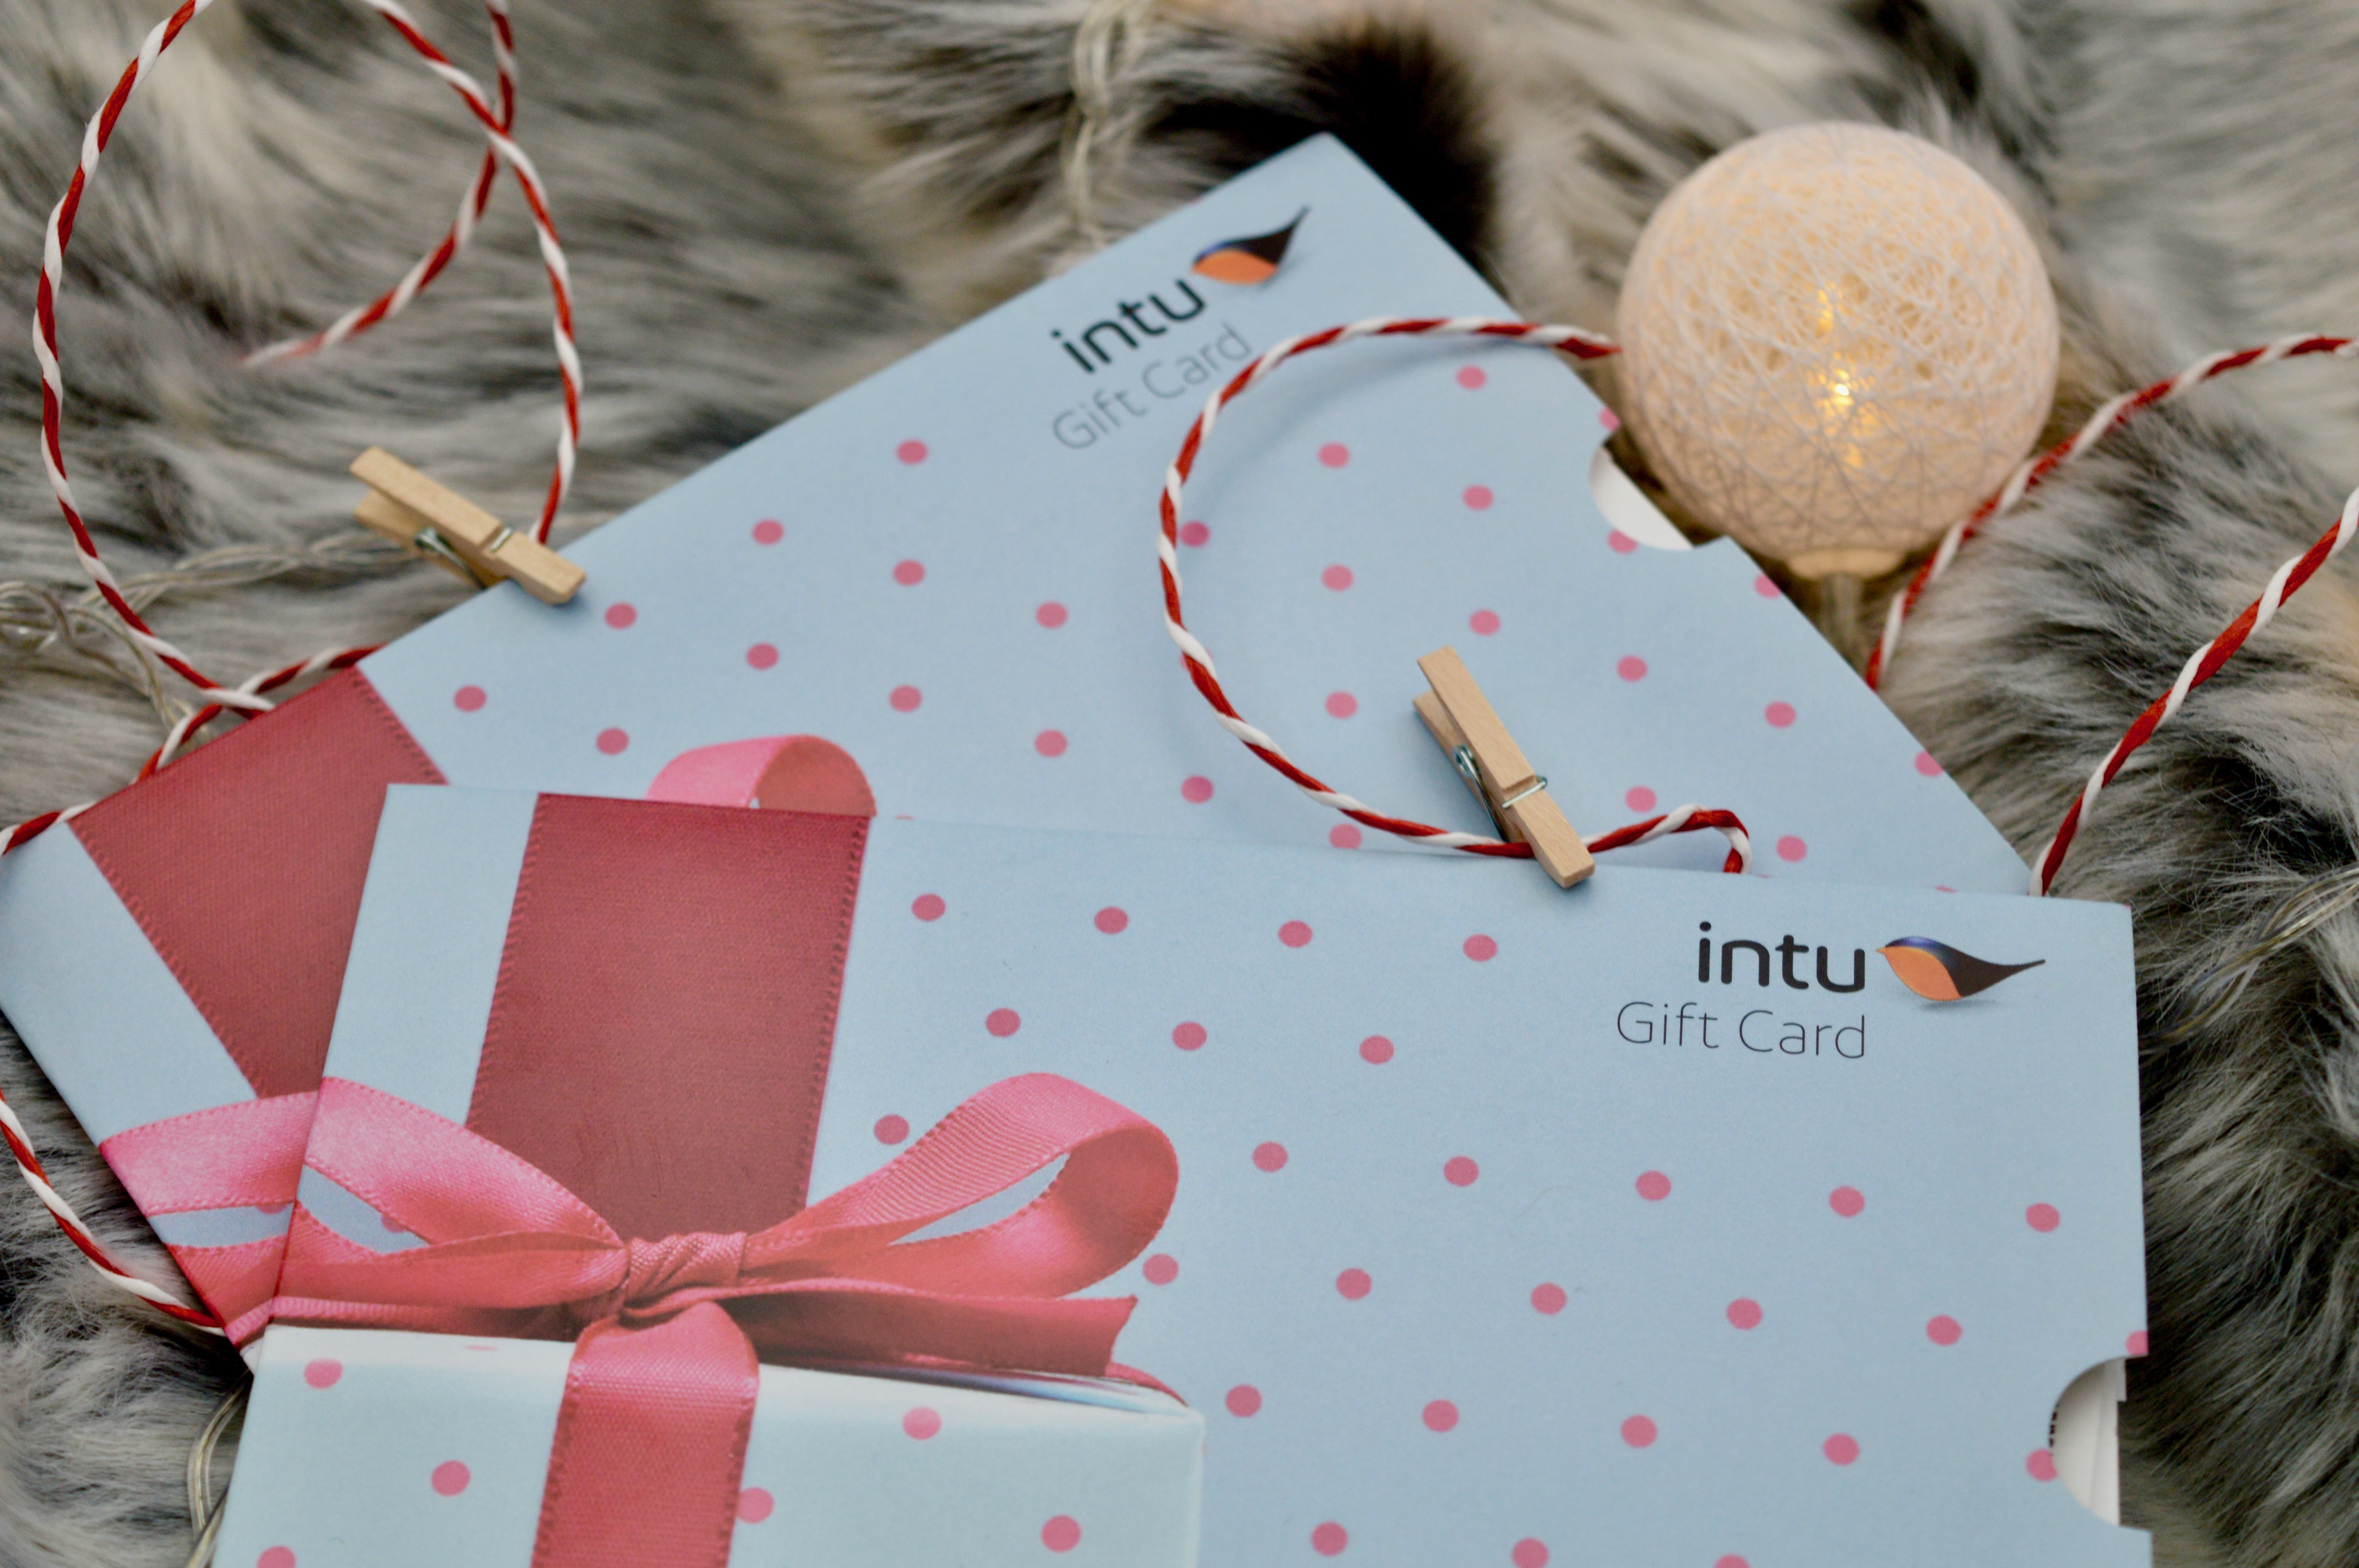 intu Gift Vouchers | What to buy somebody who has everything | Christmas Gift Guide | Elle Blonde Luxury Lifestyle Destination Blog